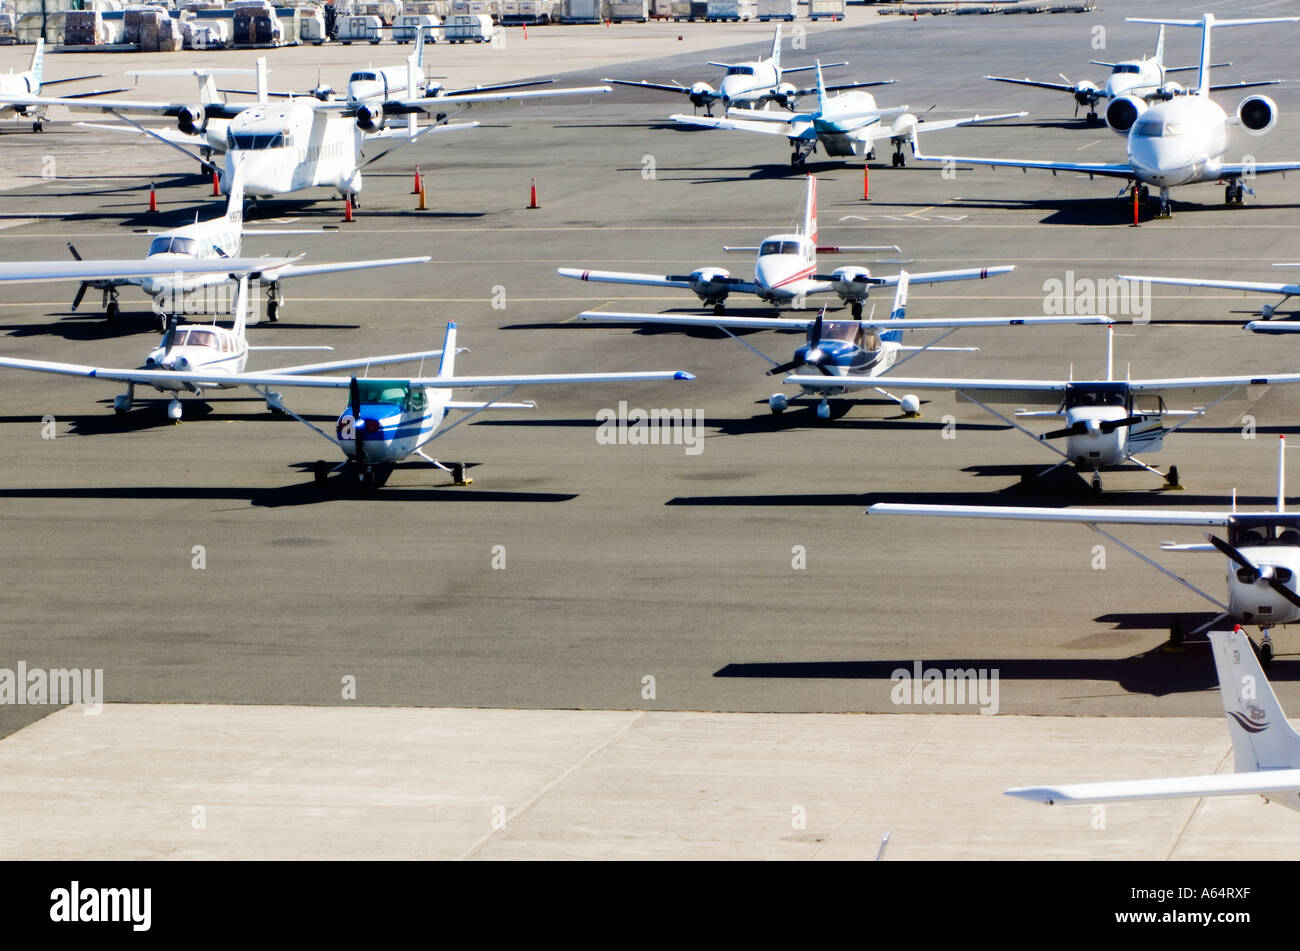 Small planes on the tarmac at the airport in Honolulu Oahu Hawaii. - Stock Image